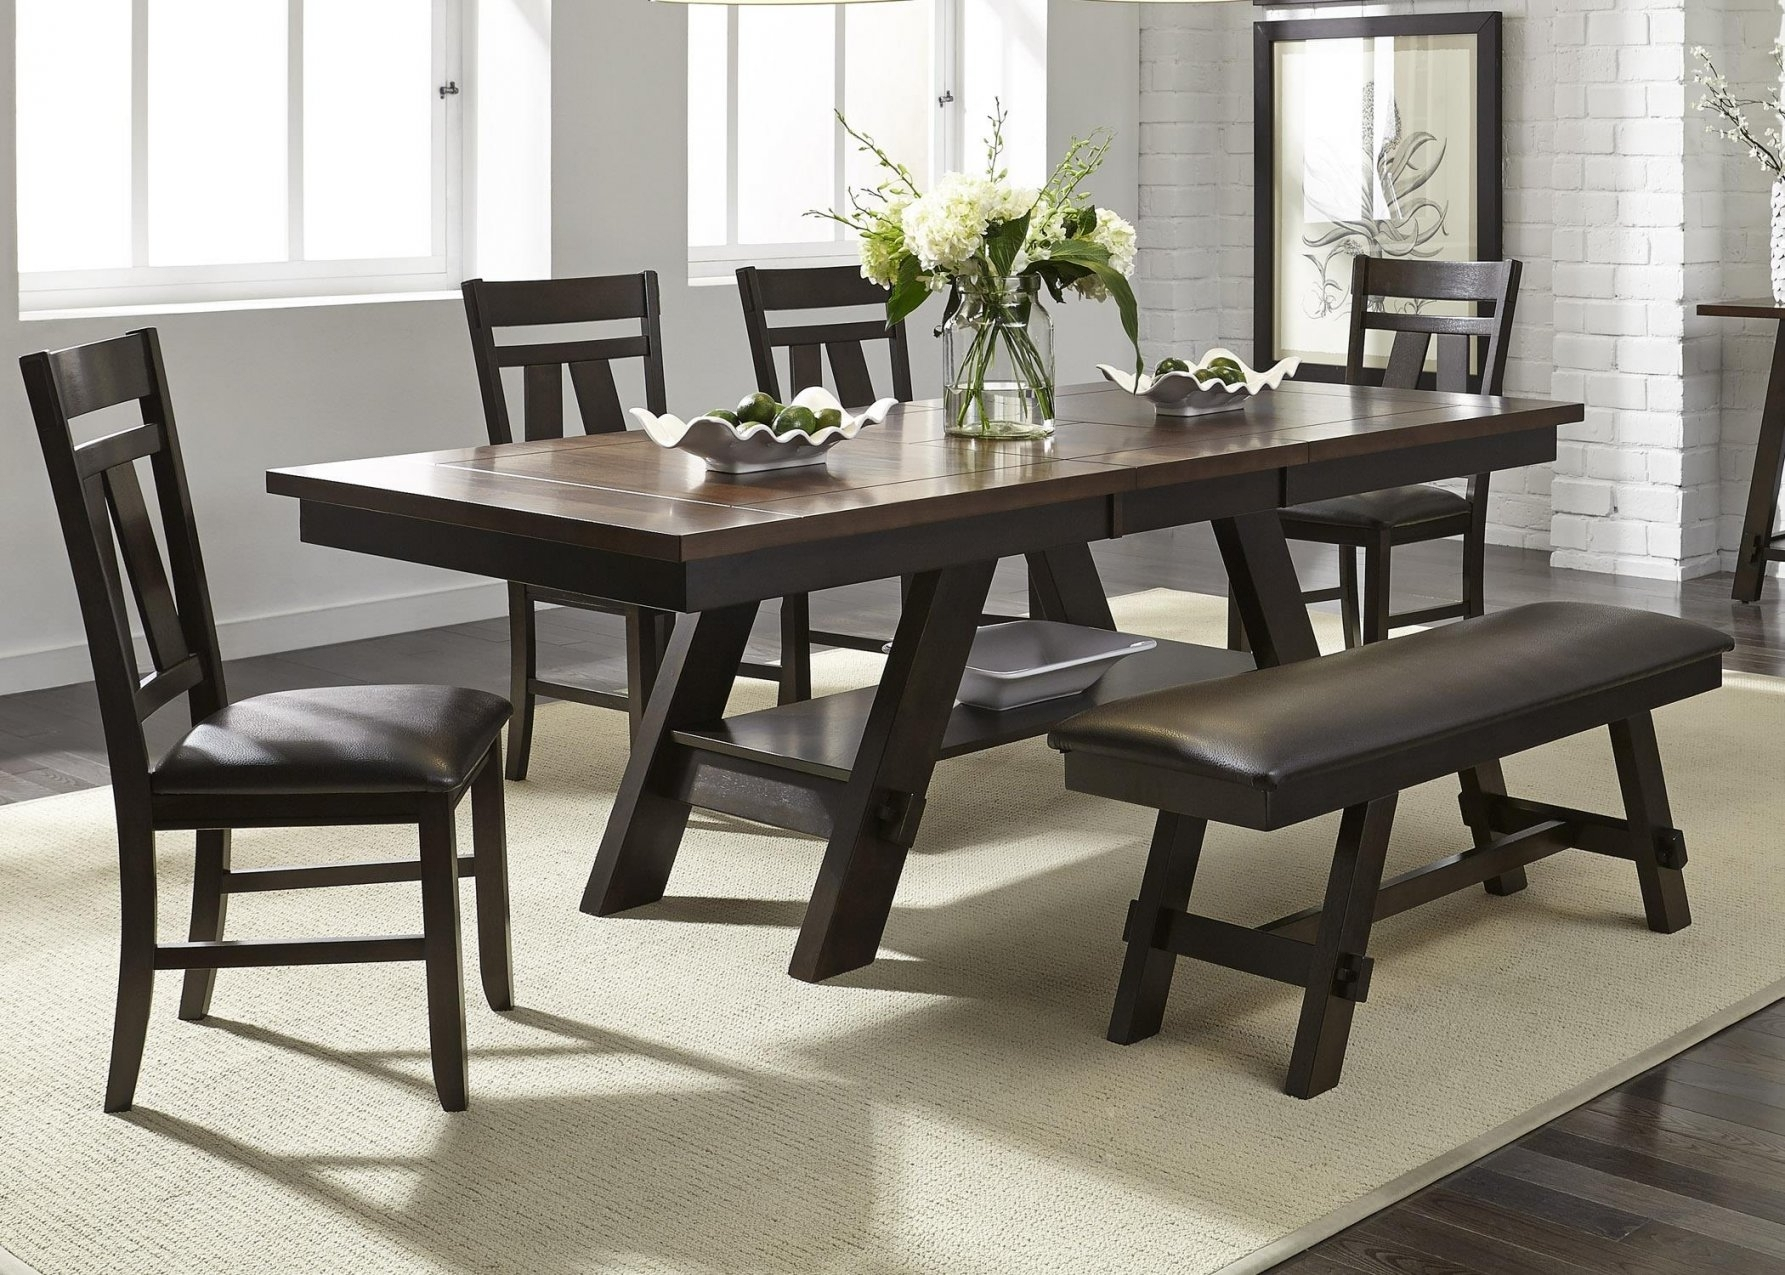 6 Piece Dining Table Set – Castrophotos With Most Current Partridge 6 Piece Dining Sets (Image 3 of 20)